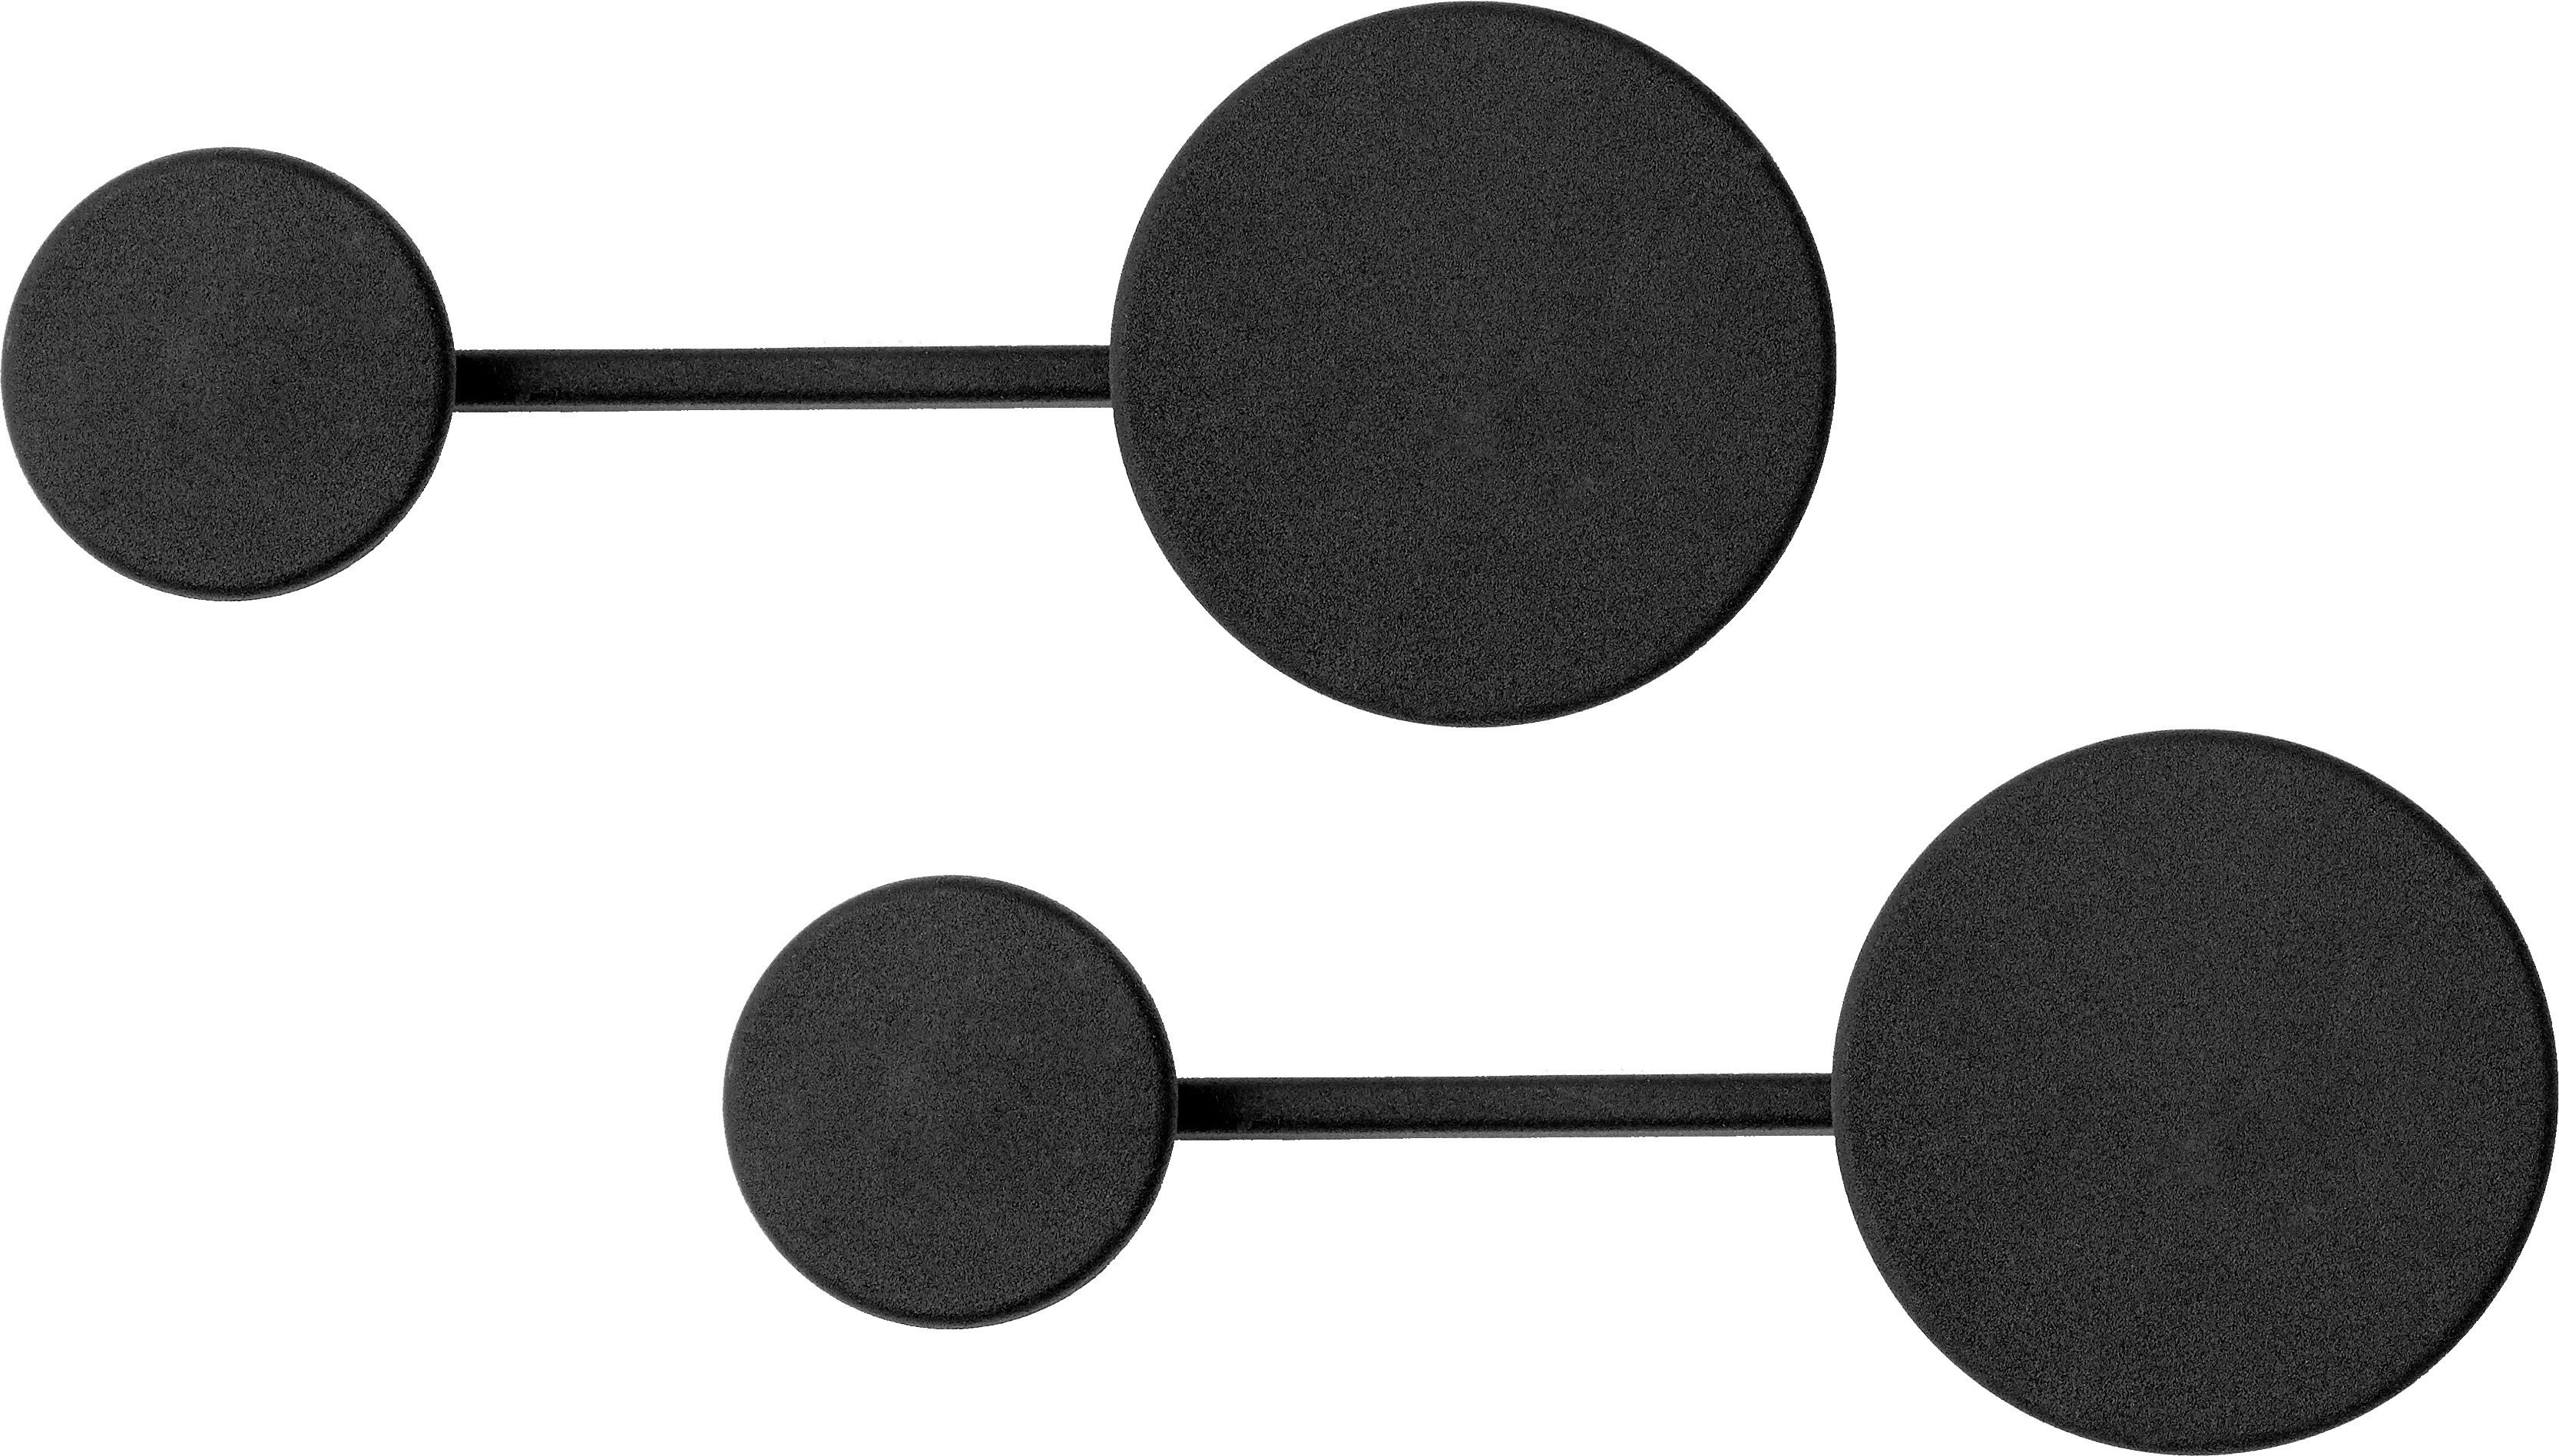 Pair of Afteroom Coat Hangers Black S by Afteroom for Menu